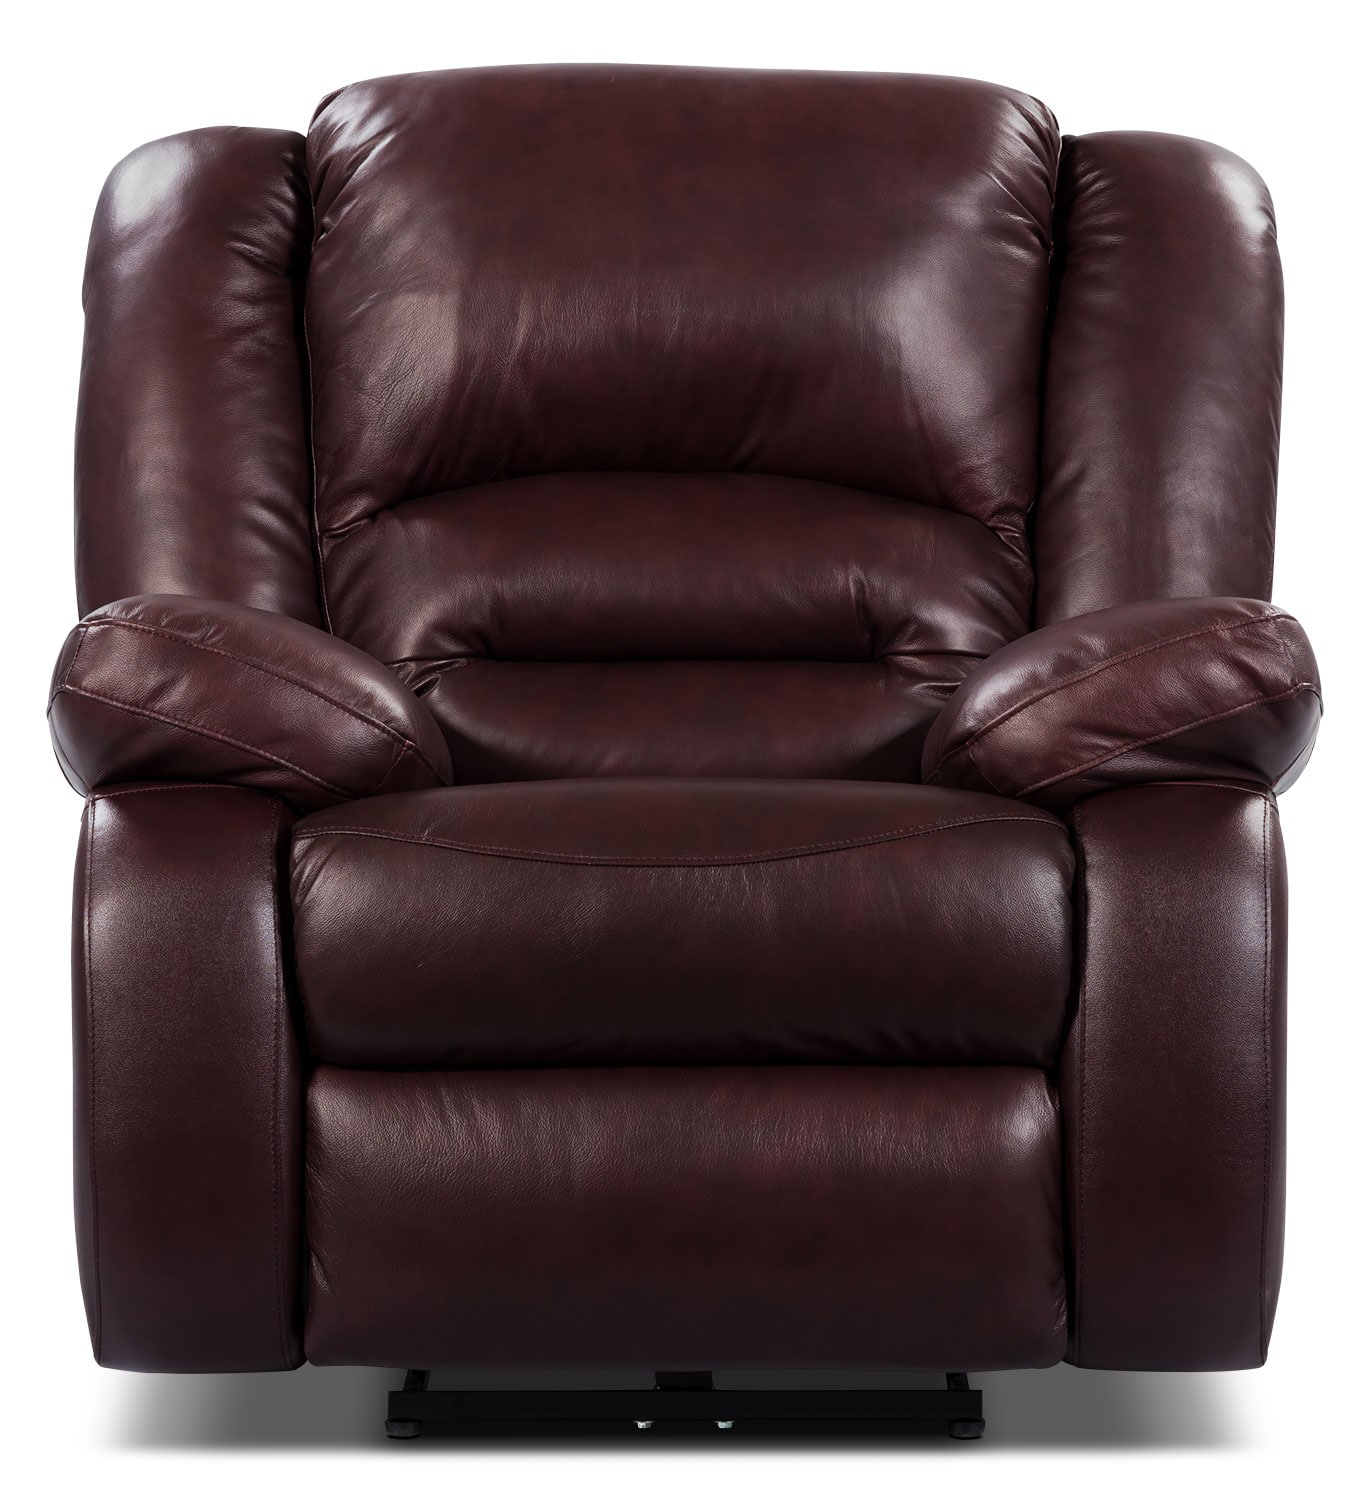 Living Room Furniture - Toreno Burgundy Genuine Leather Reclining Chair